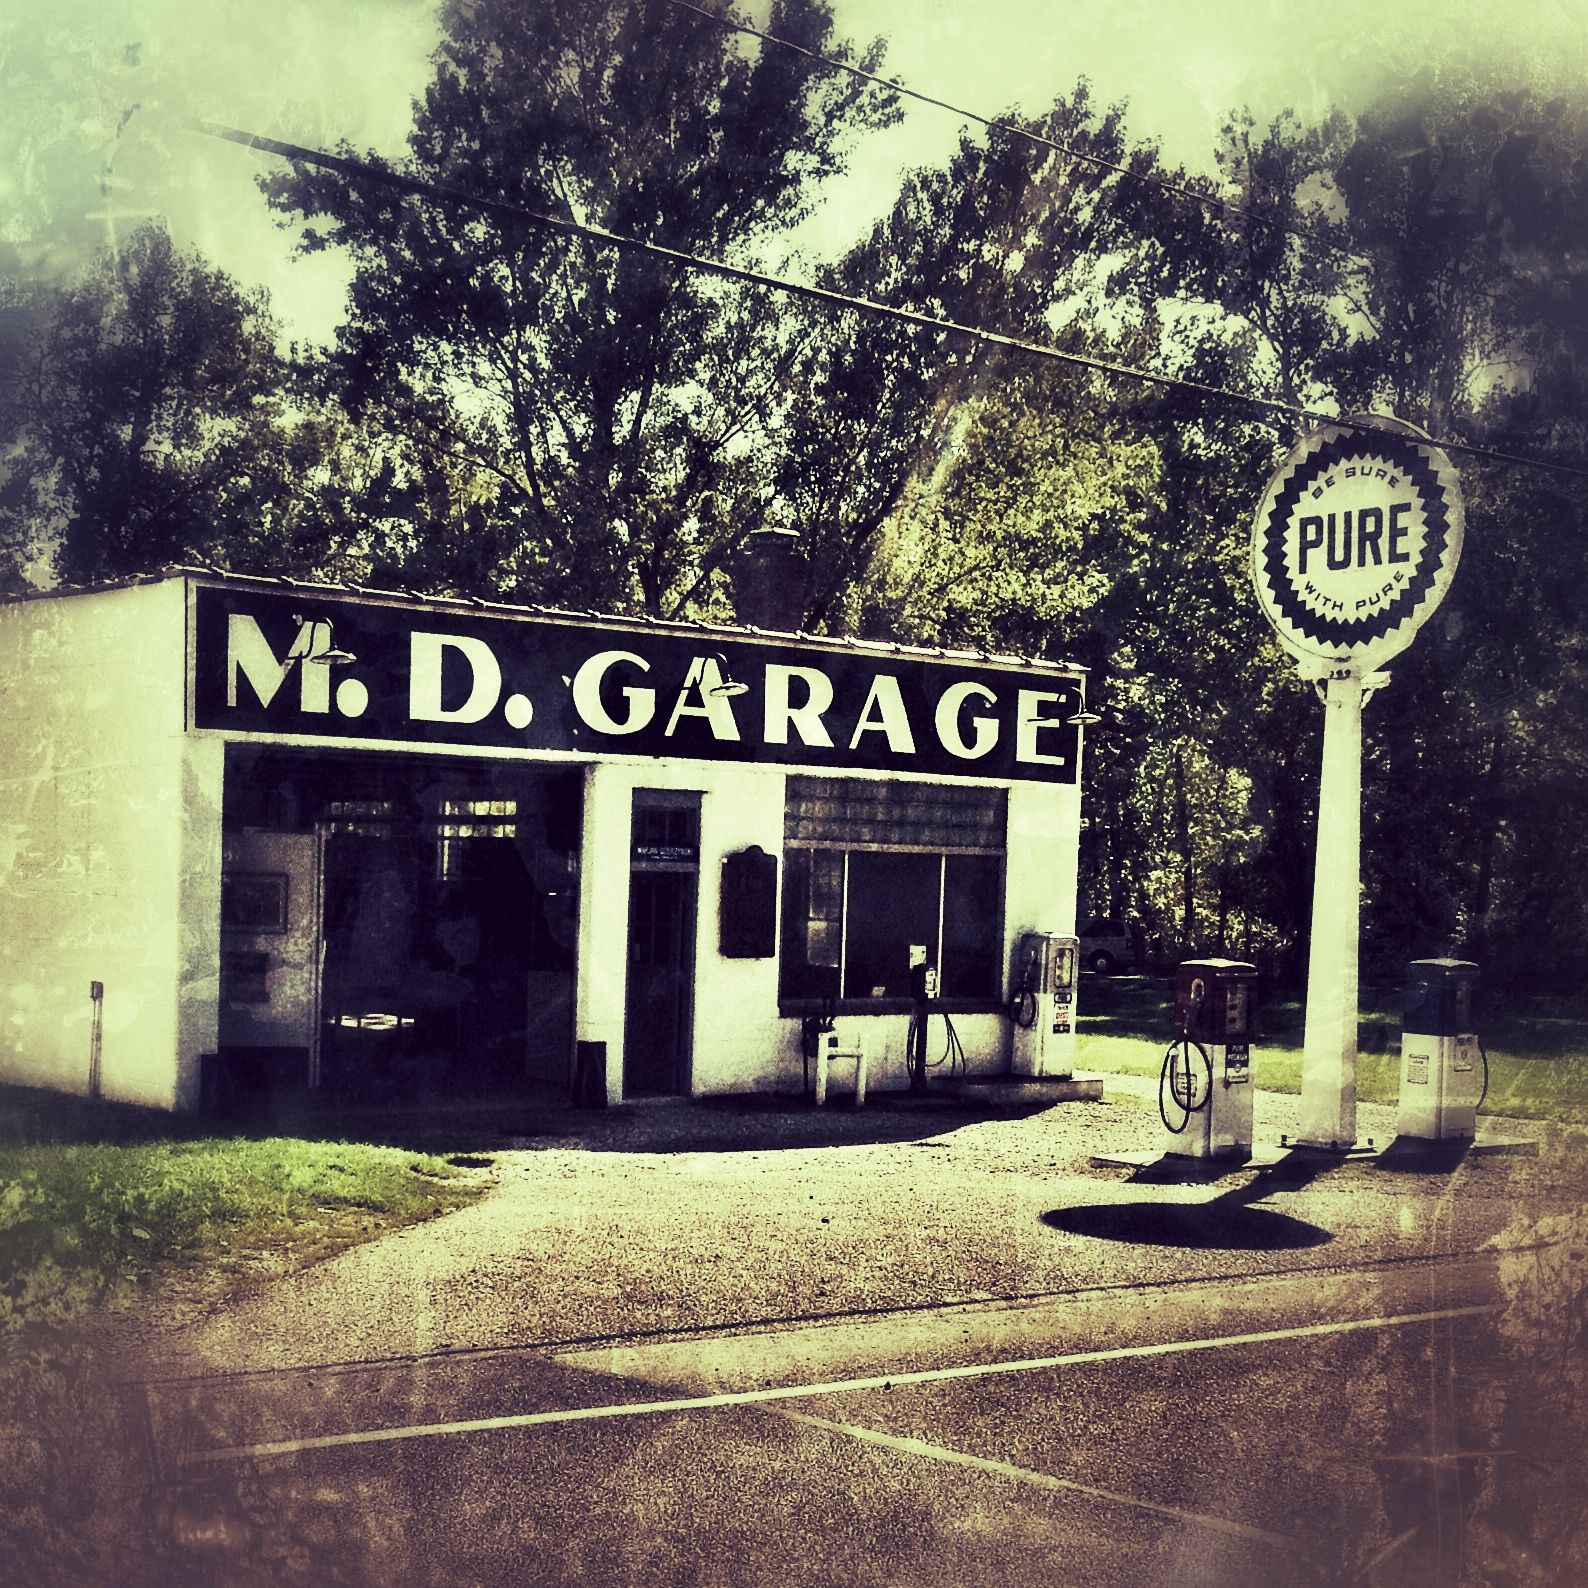 MD Garage Cuyahoga valley national park, Cuyahoga valley